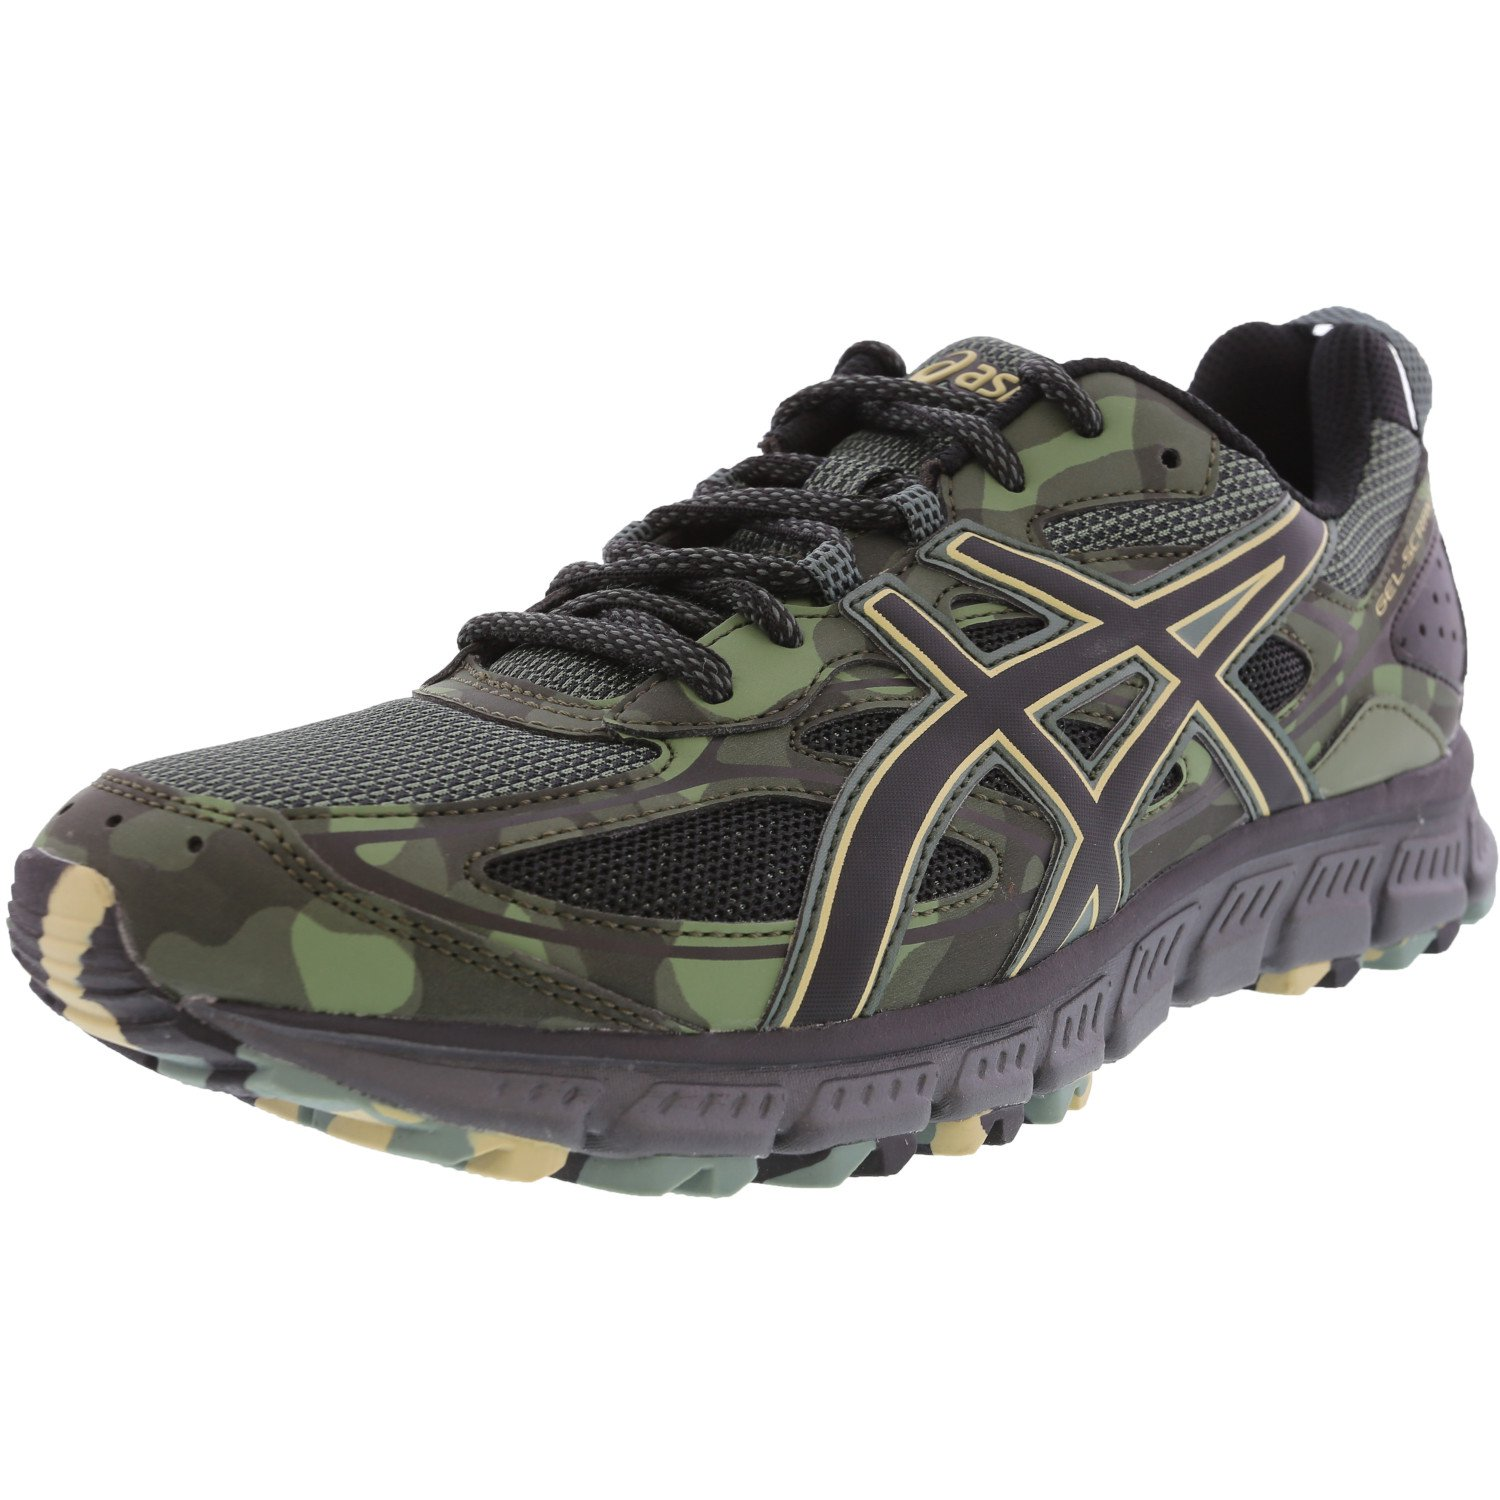 ASICS ASICS Gel Scram 3 Trail Running Shoe 8.5M Dark